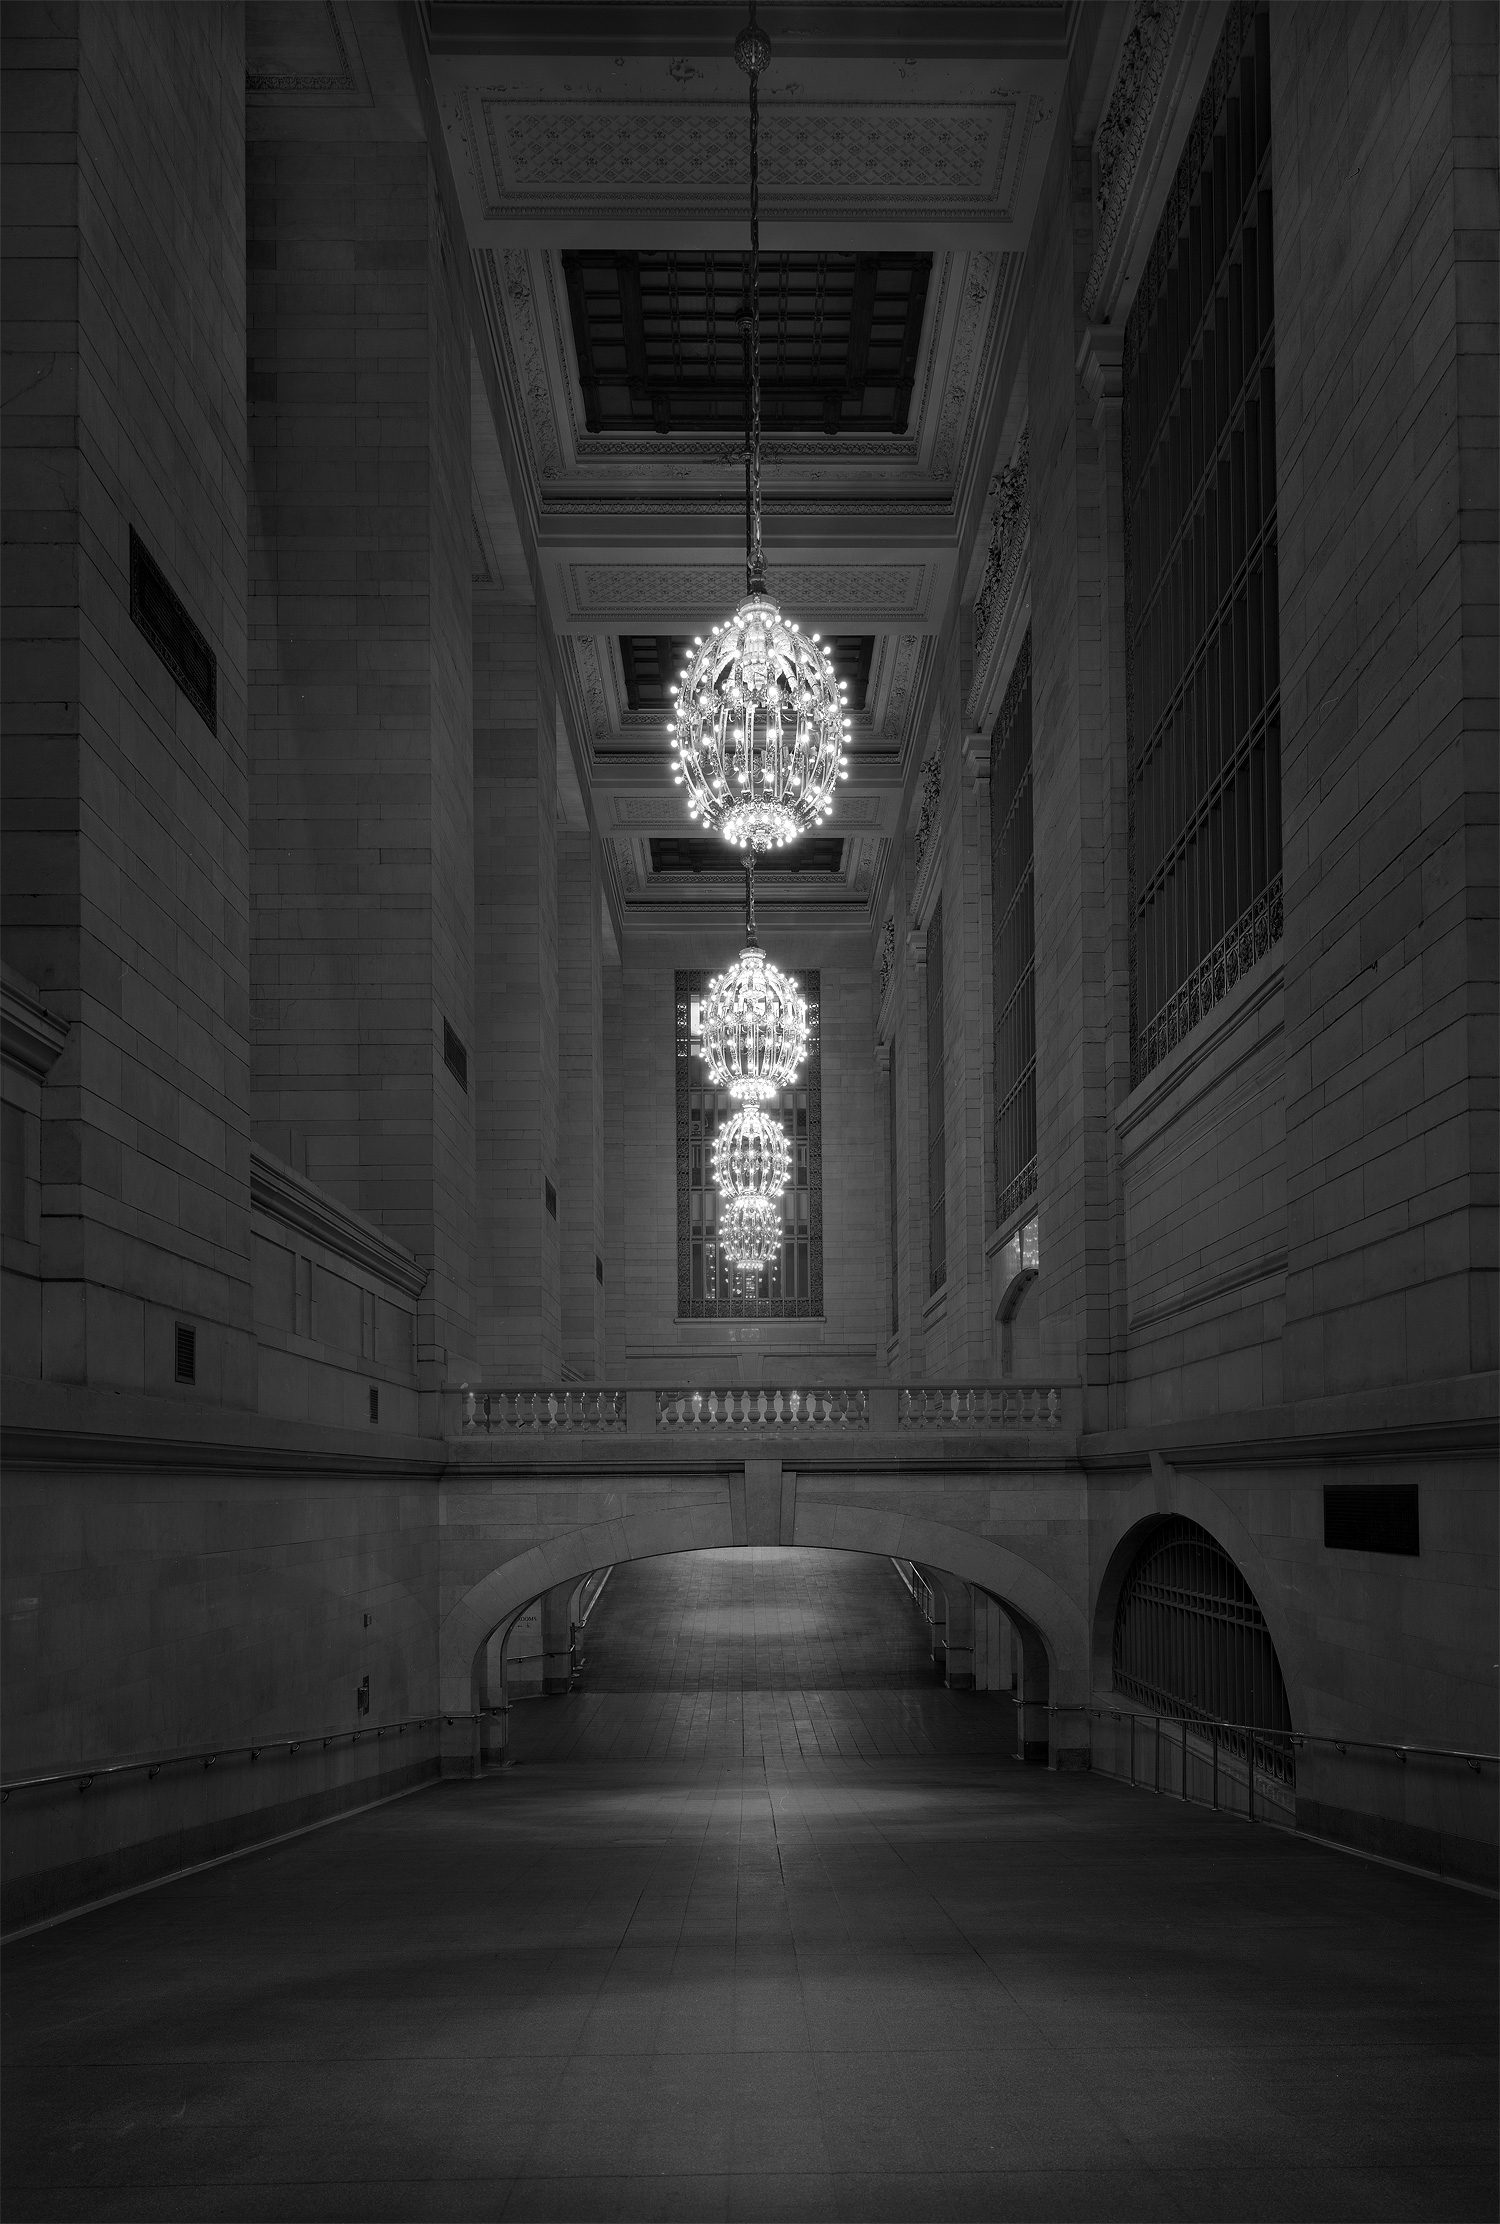 """Ditch Light"" - Grand Central Station Project - 2 am Corridor"